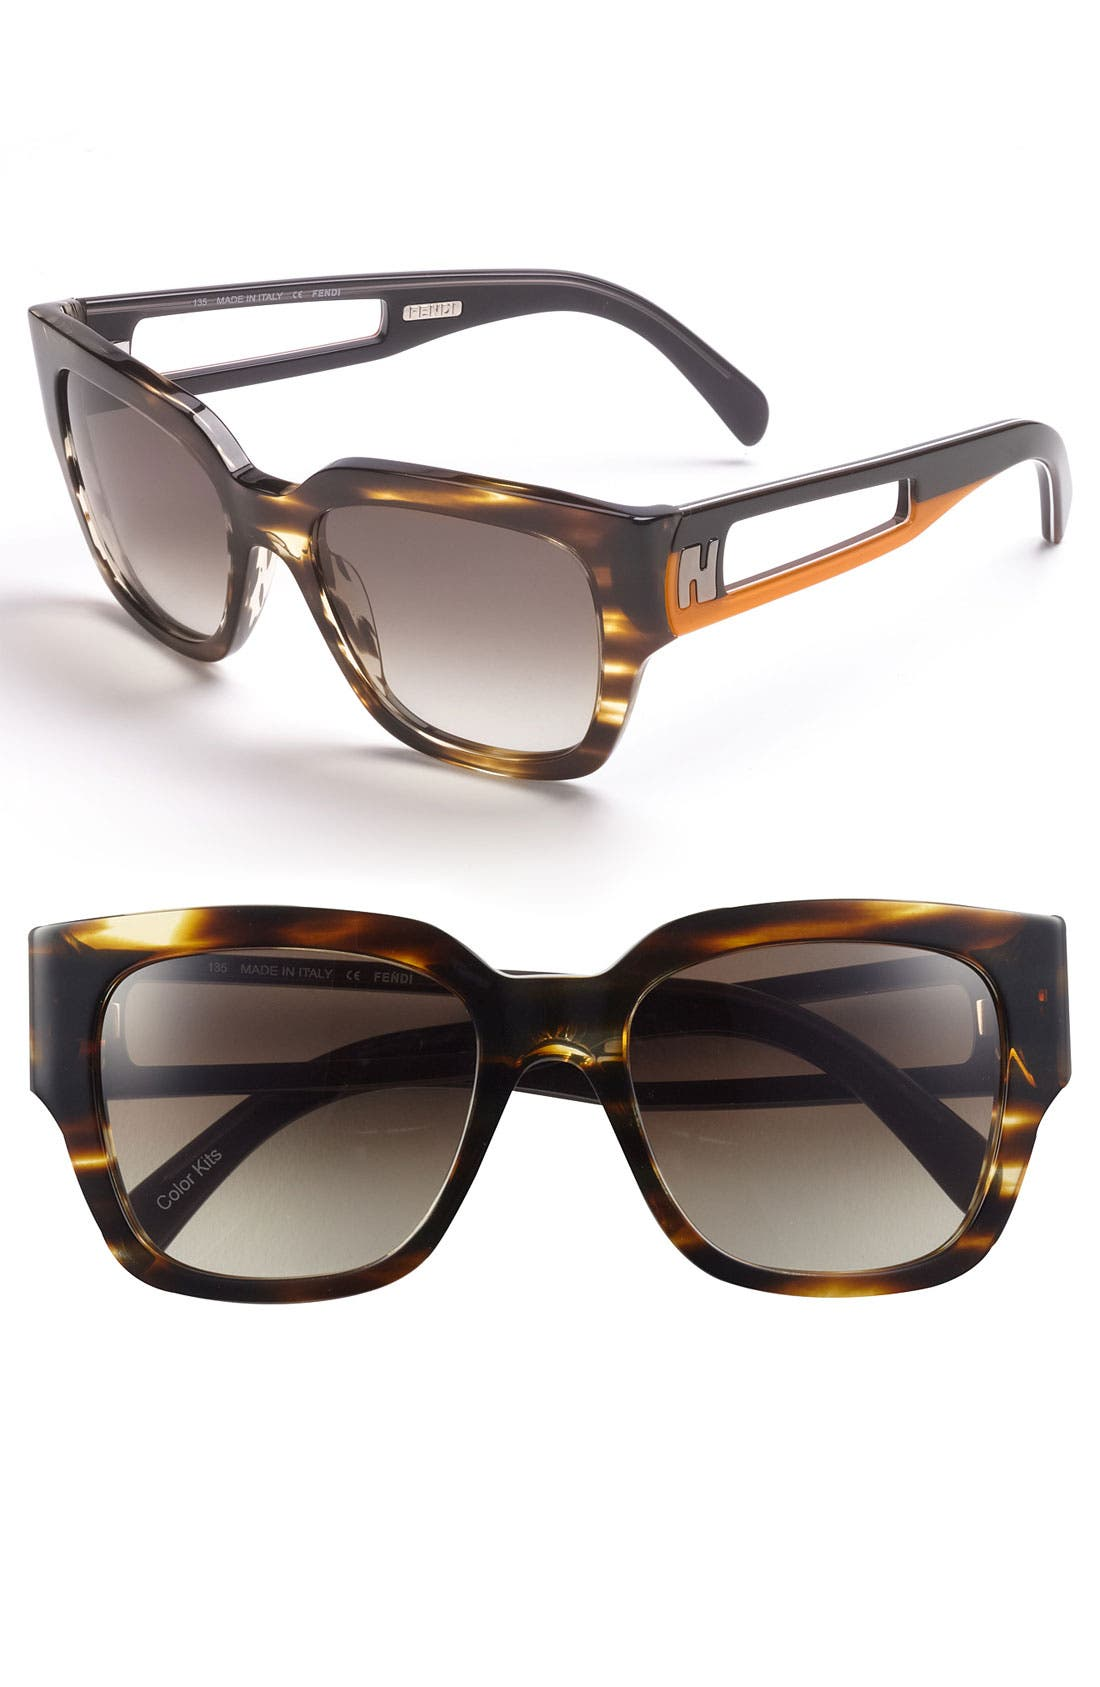 Alternate Image 1 Selected - Fendi 52mm Retro Sunglasses